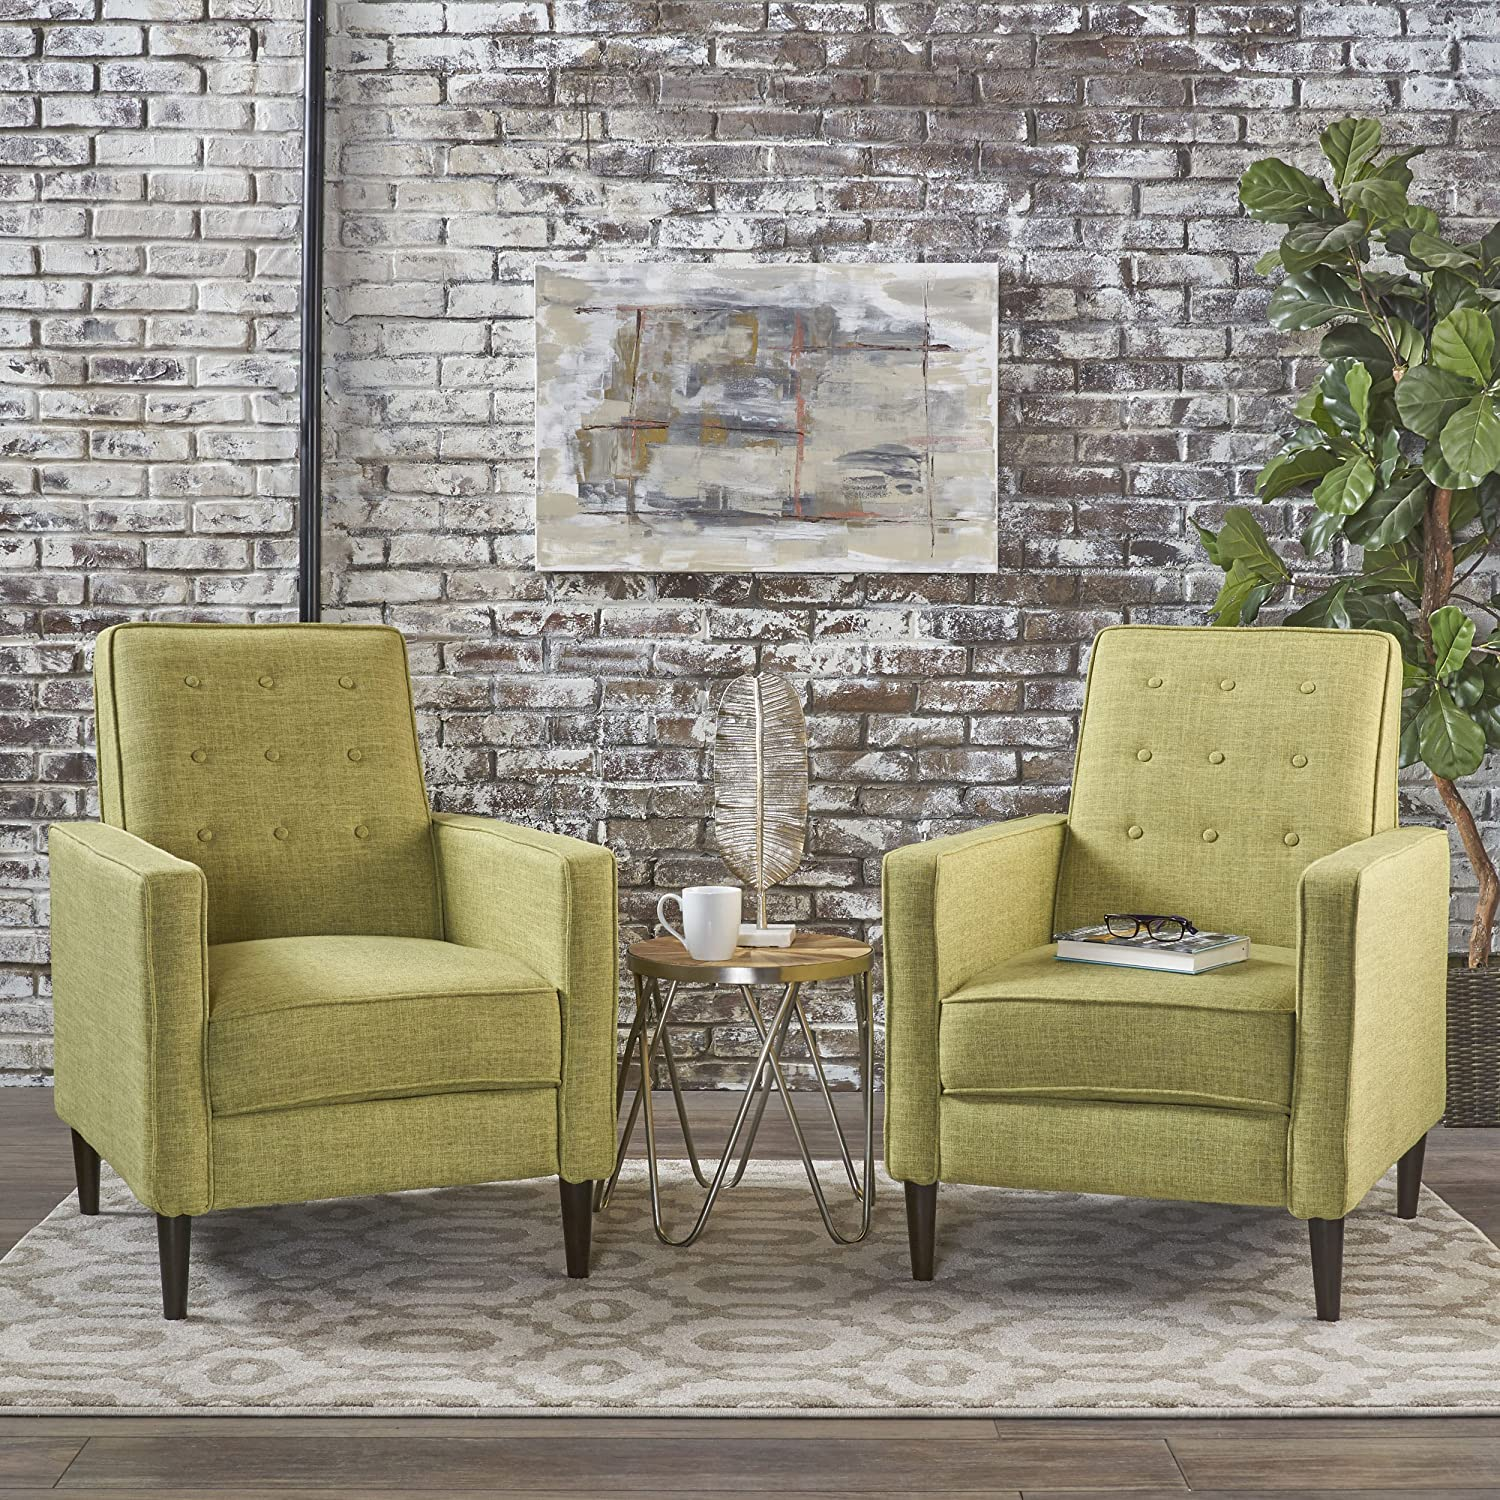 Christopher Knight Home 301376 Mason Mid-Century Modern Tuft Back Recliner (Qty of 2, Fabric/Muted Green), Set of 2